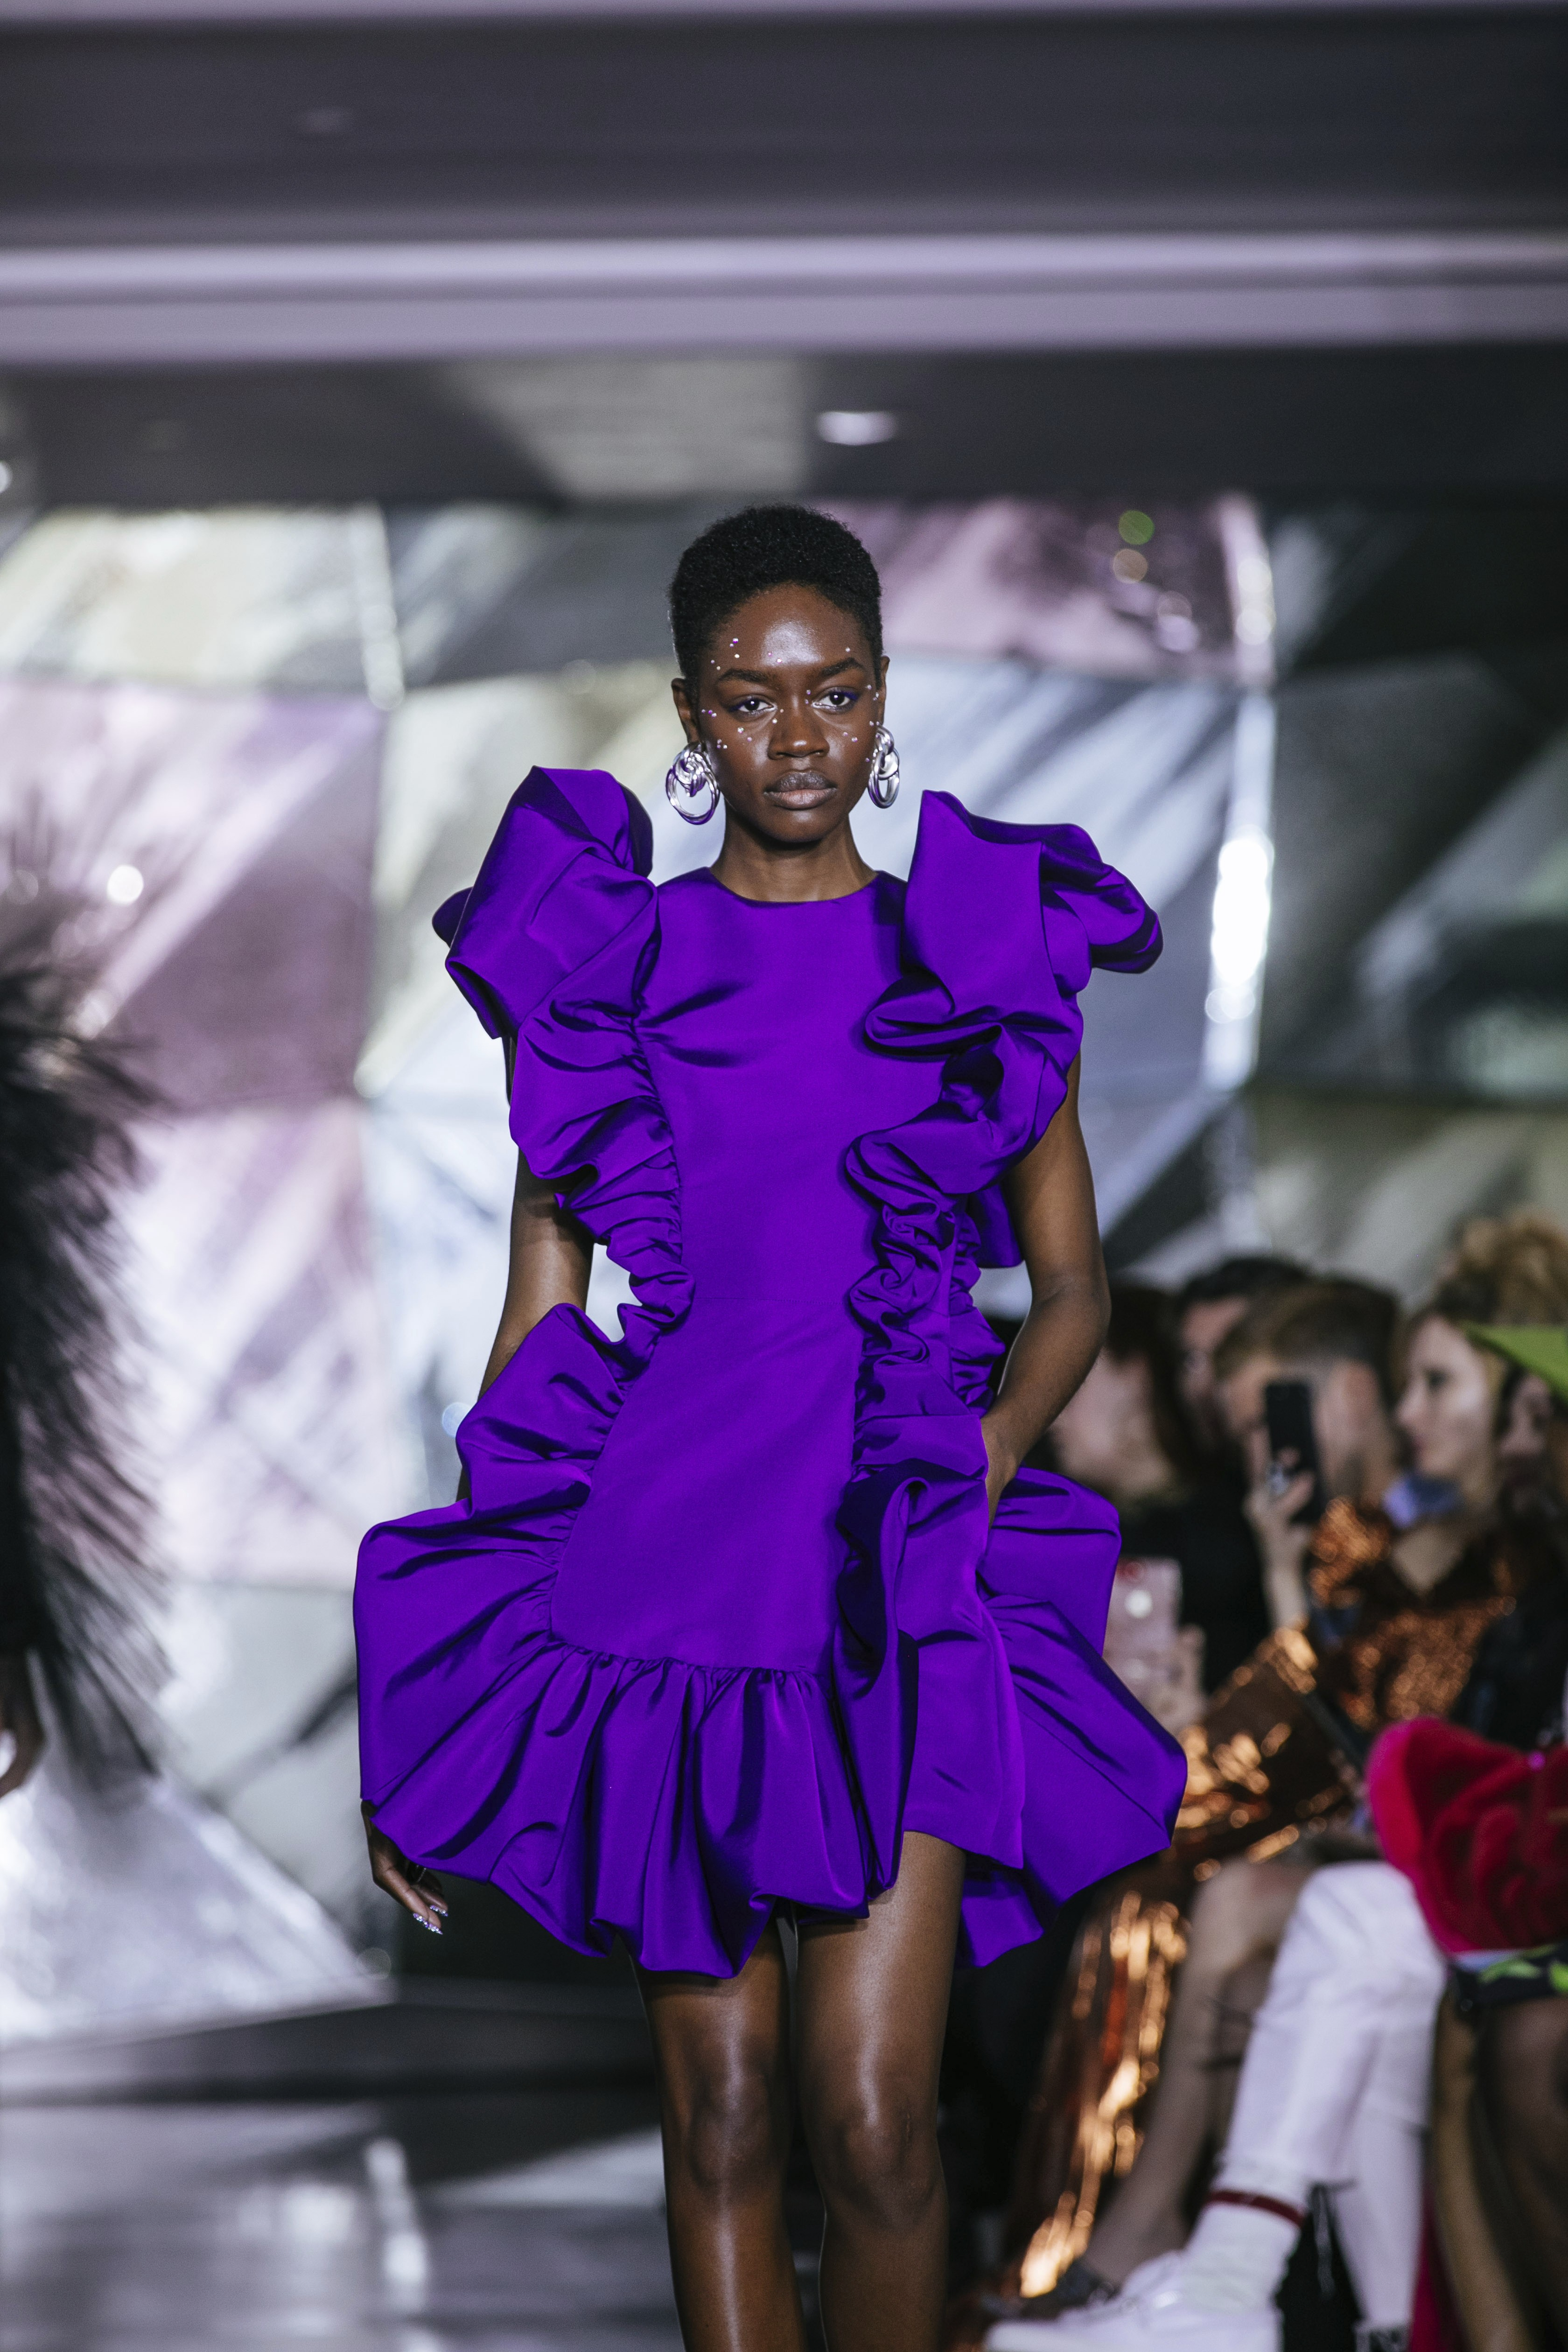 b8eec22dfa7 New York Fashion Week: Prabal Gurung and Christian Siriano find inspiration  in Nepal and diversity | South China Morning Post